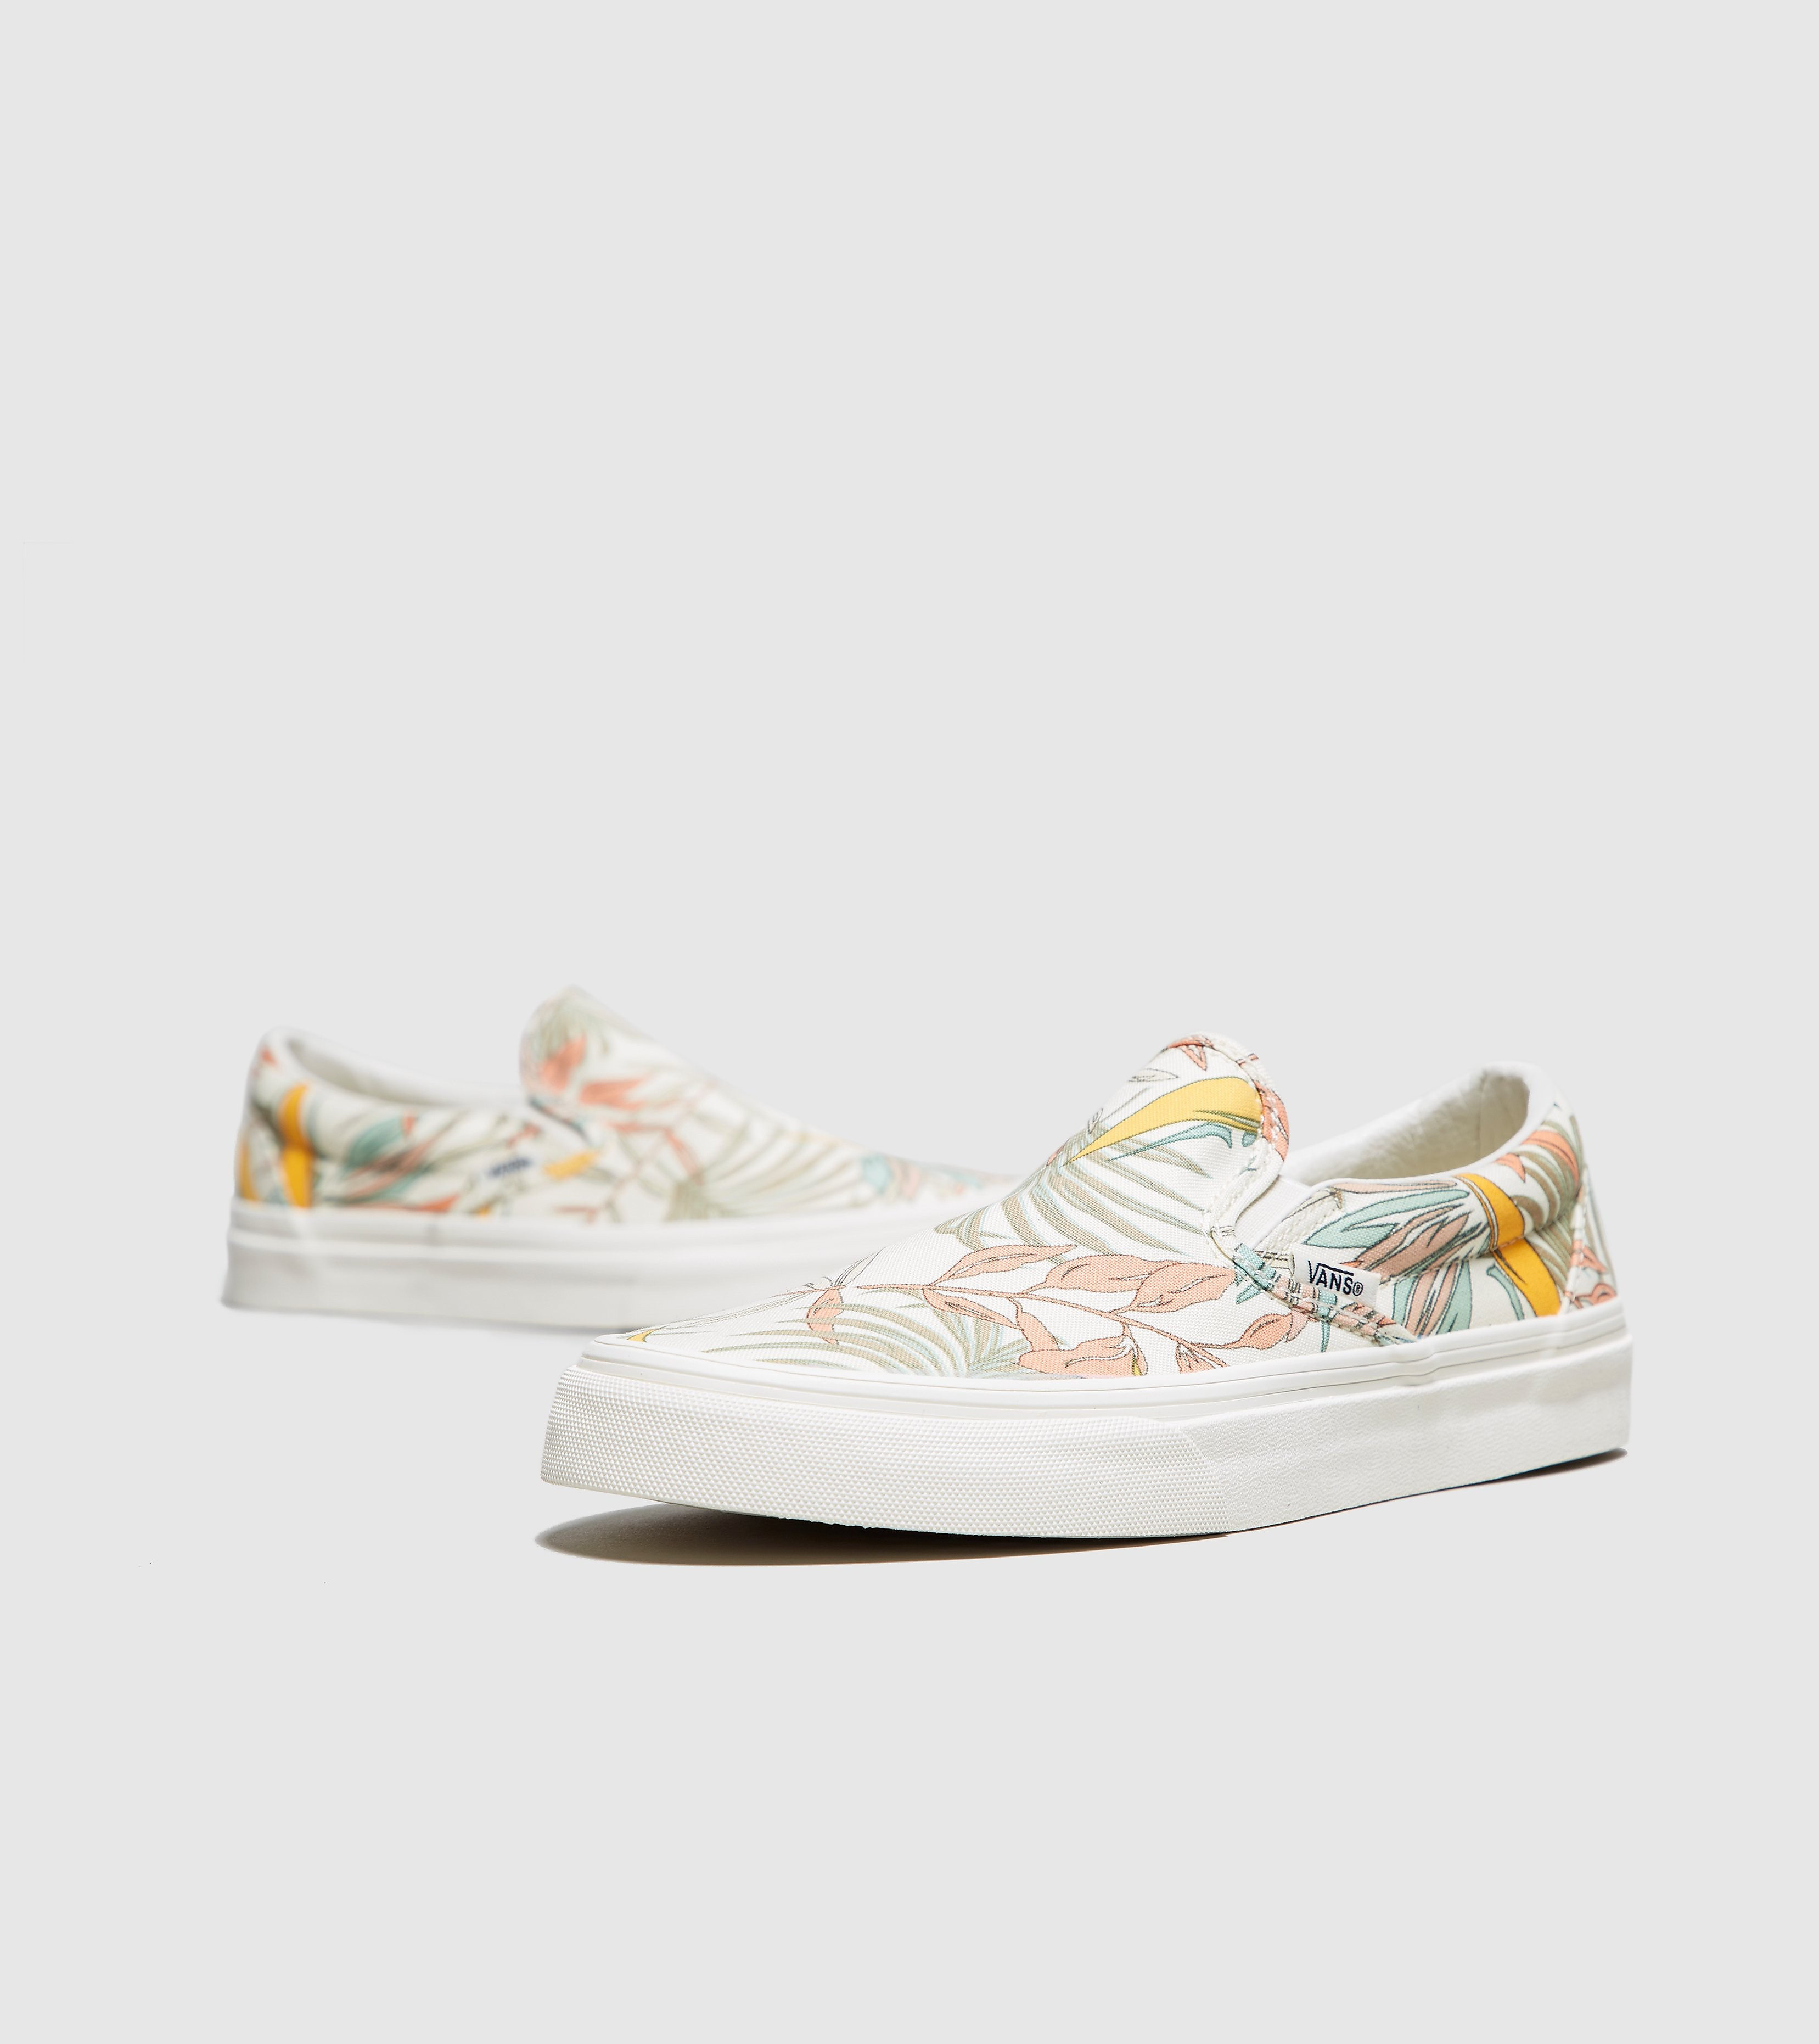 Vans Slip-On California Floral Women's